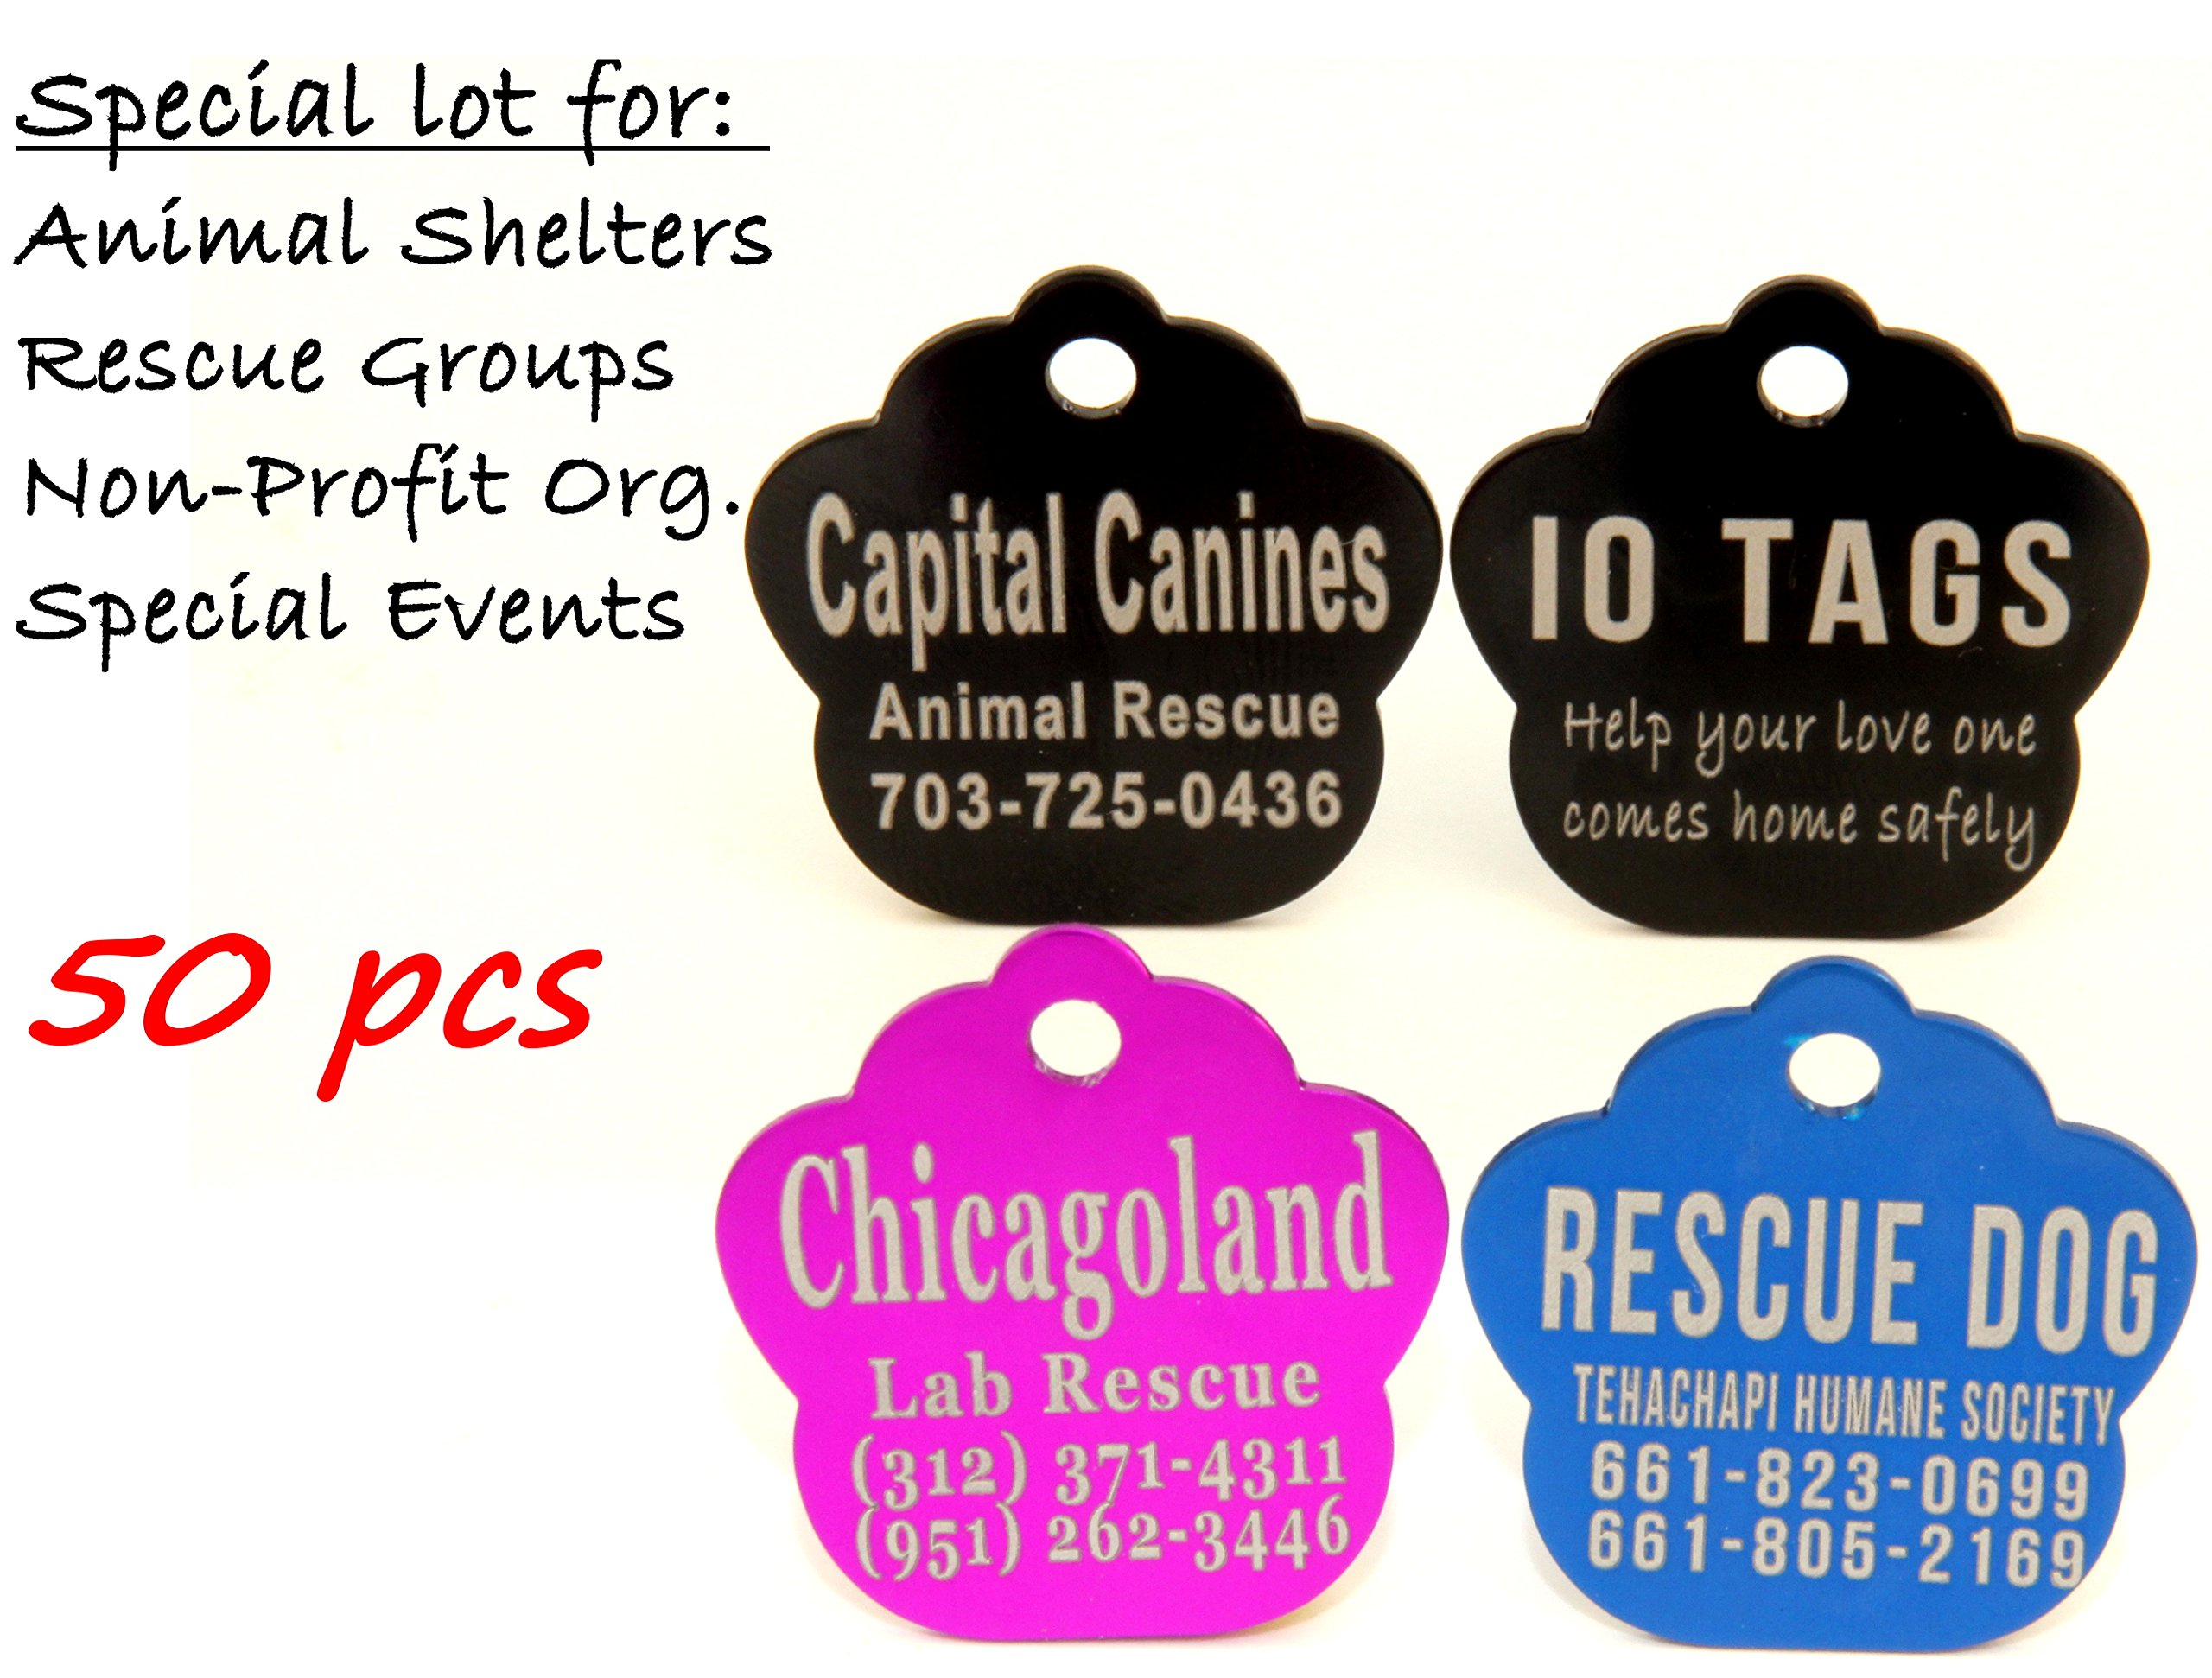 Laser Etched Bulk Lot Pet ID Tag for Dog & Cat Shelters, Rescues, Non Profits Org. and Special Events (Lot of 50) by io tags